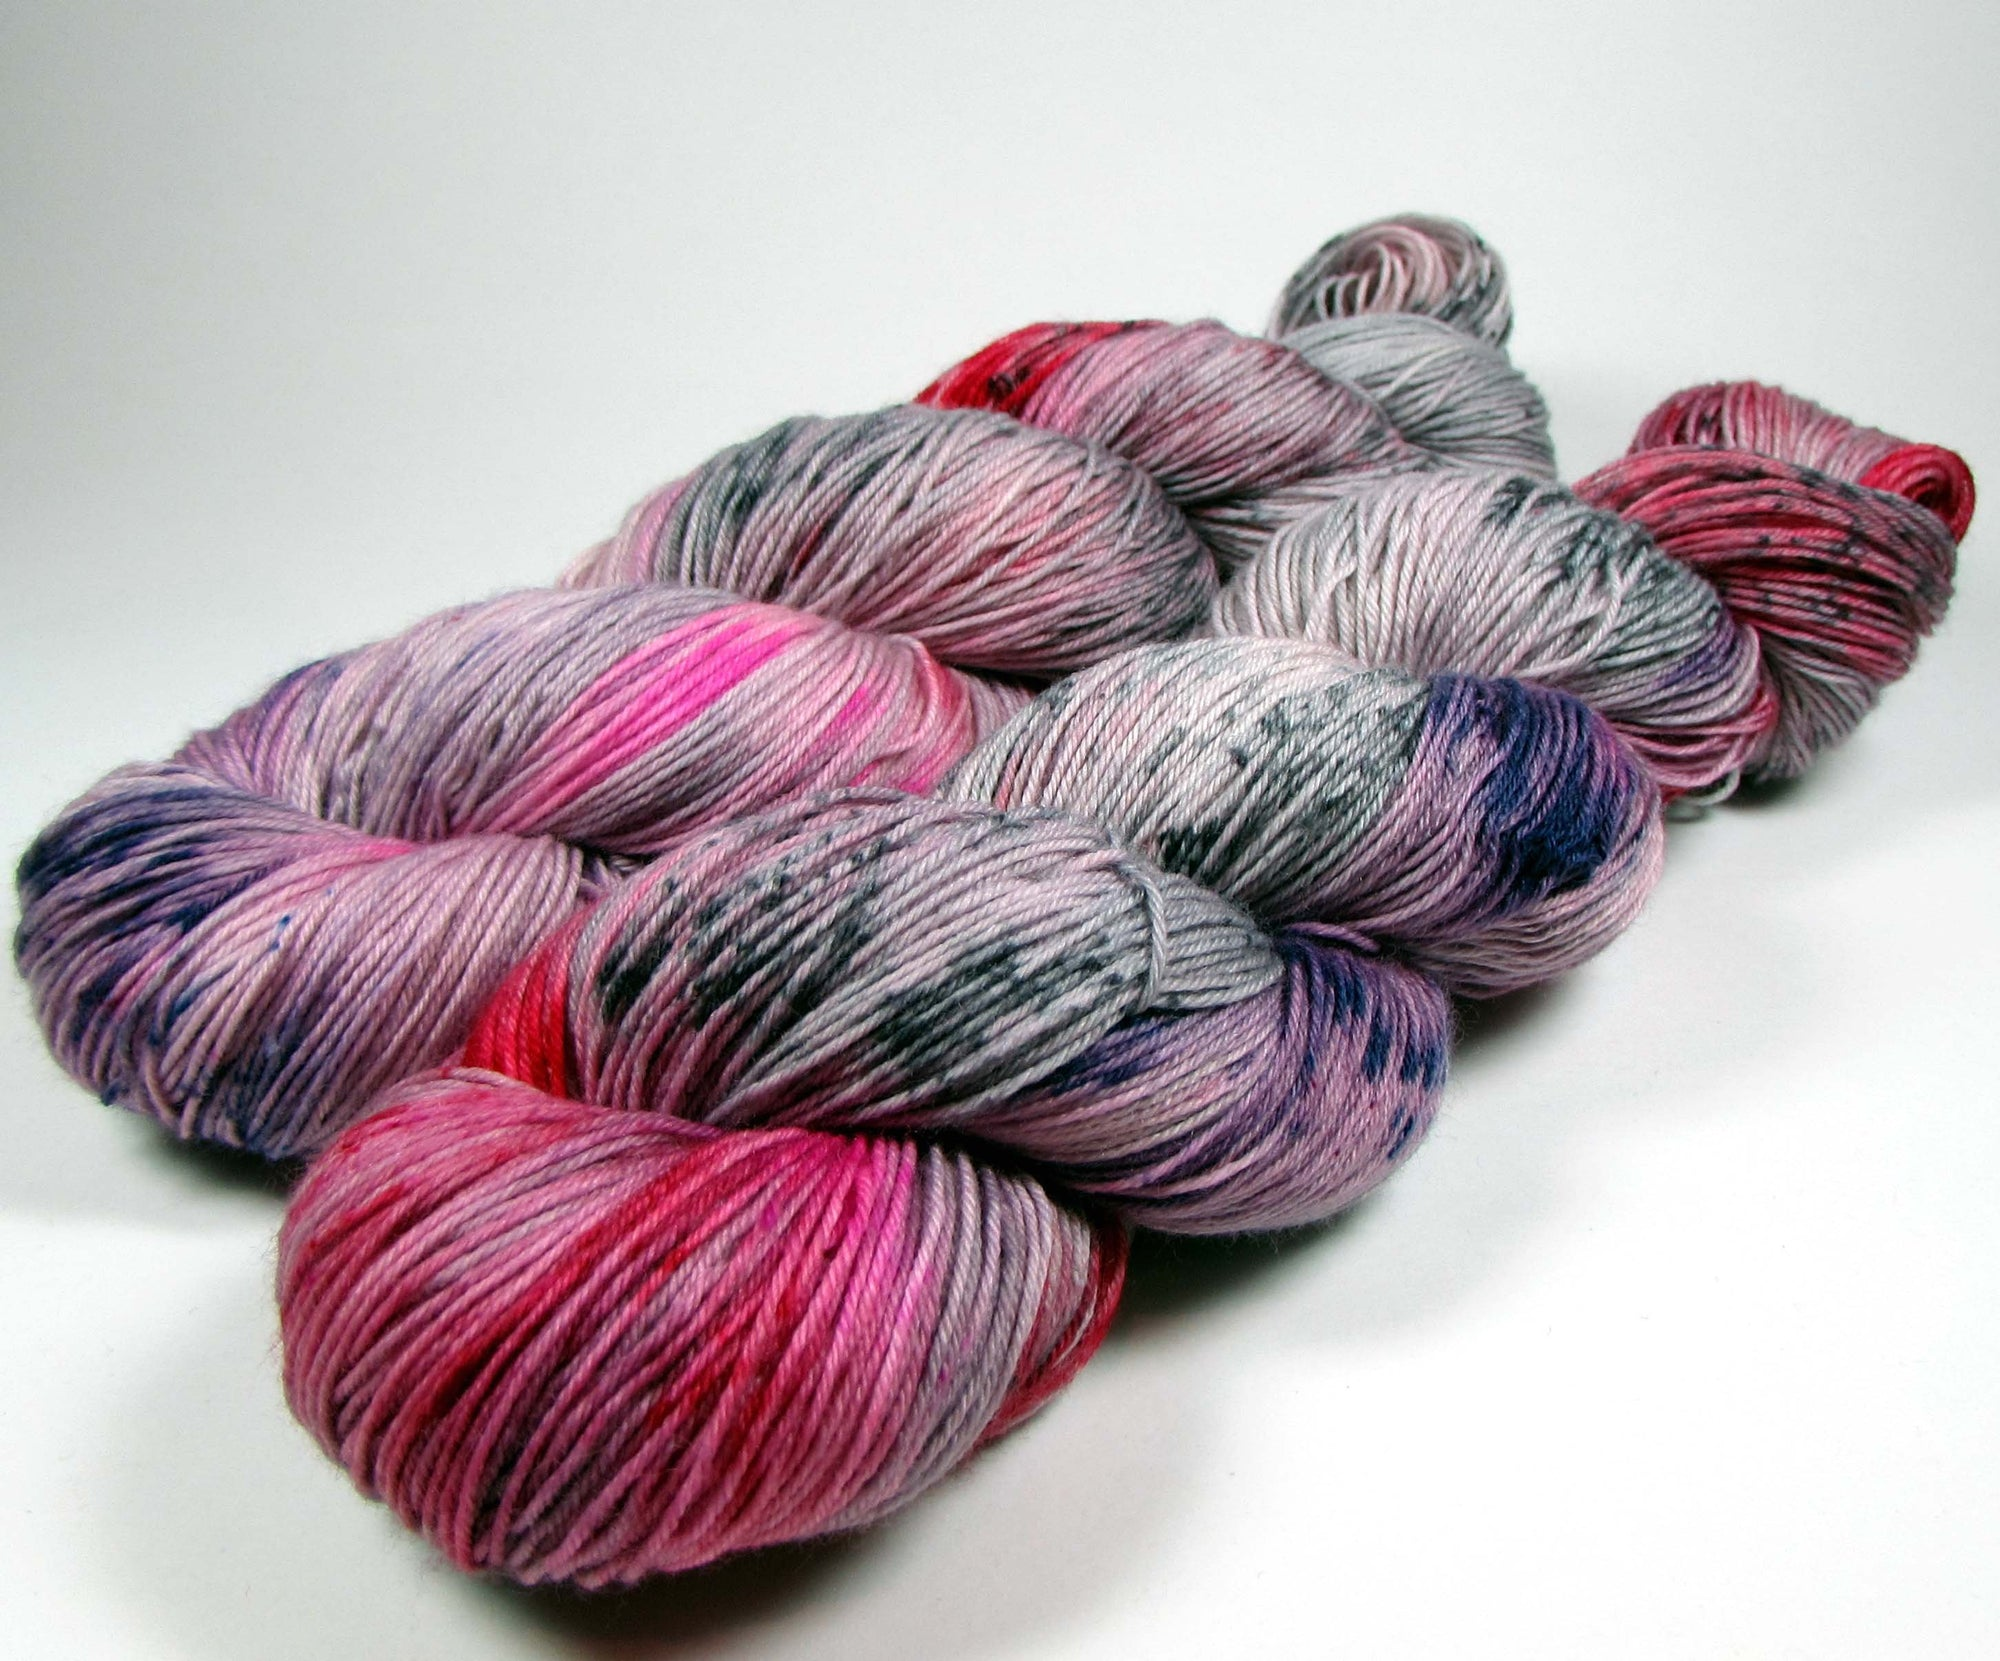 Introducing: Dyed to Order Yarn